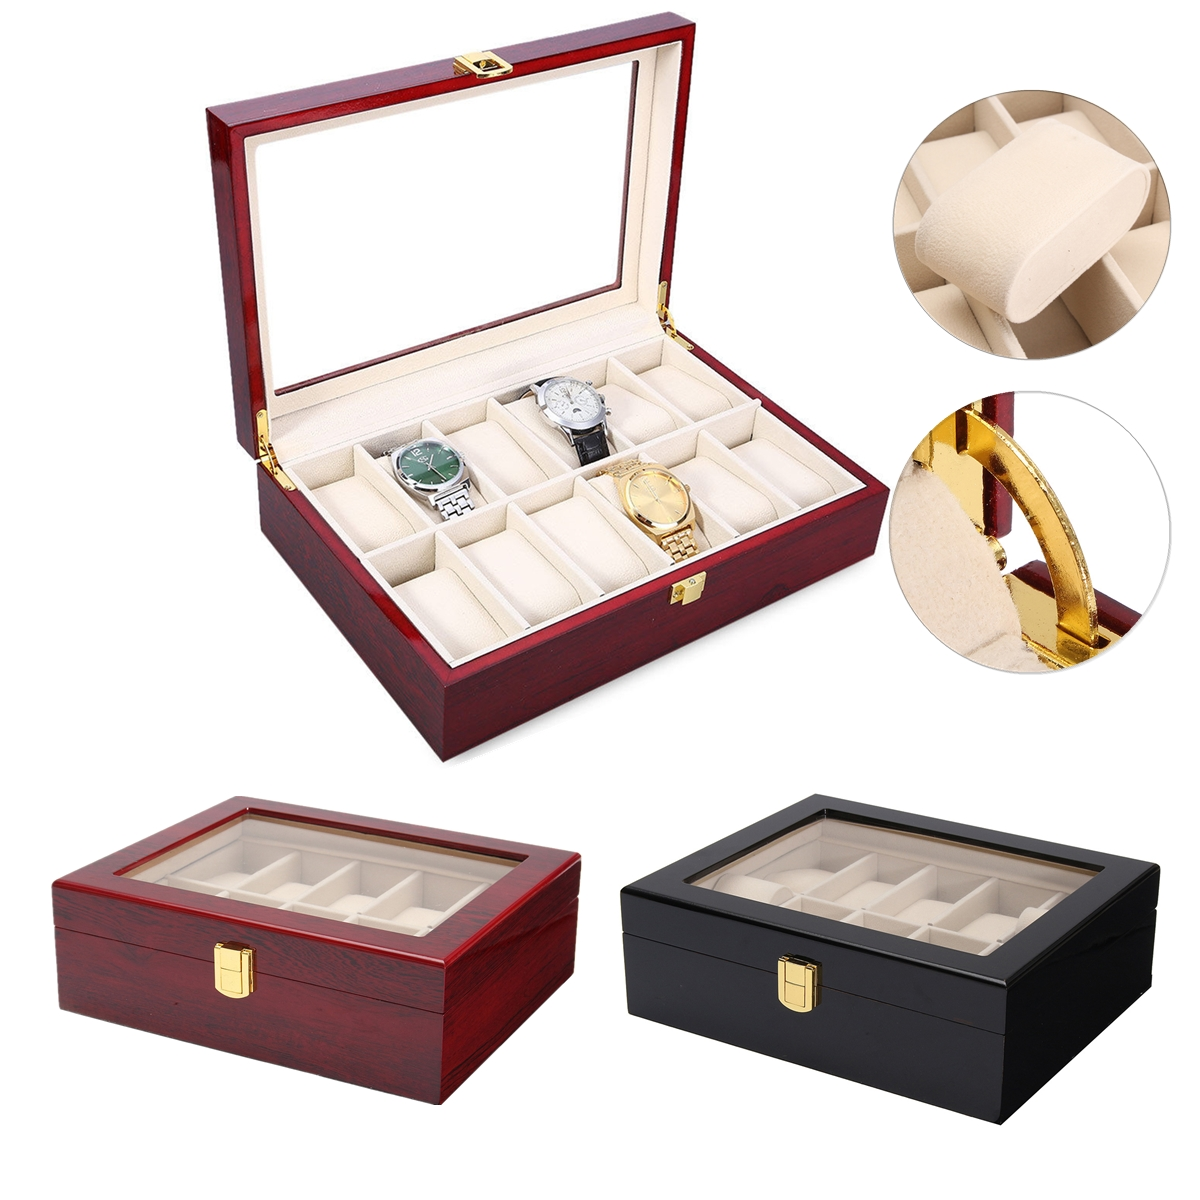 10 Grids Retro Red Wooden Watch Display Case Durable Packaging Holder Jewelry Collection Storage Watch Organizer Box Casket